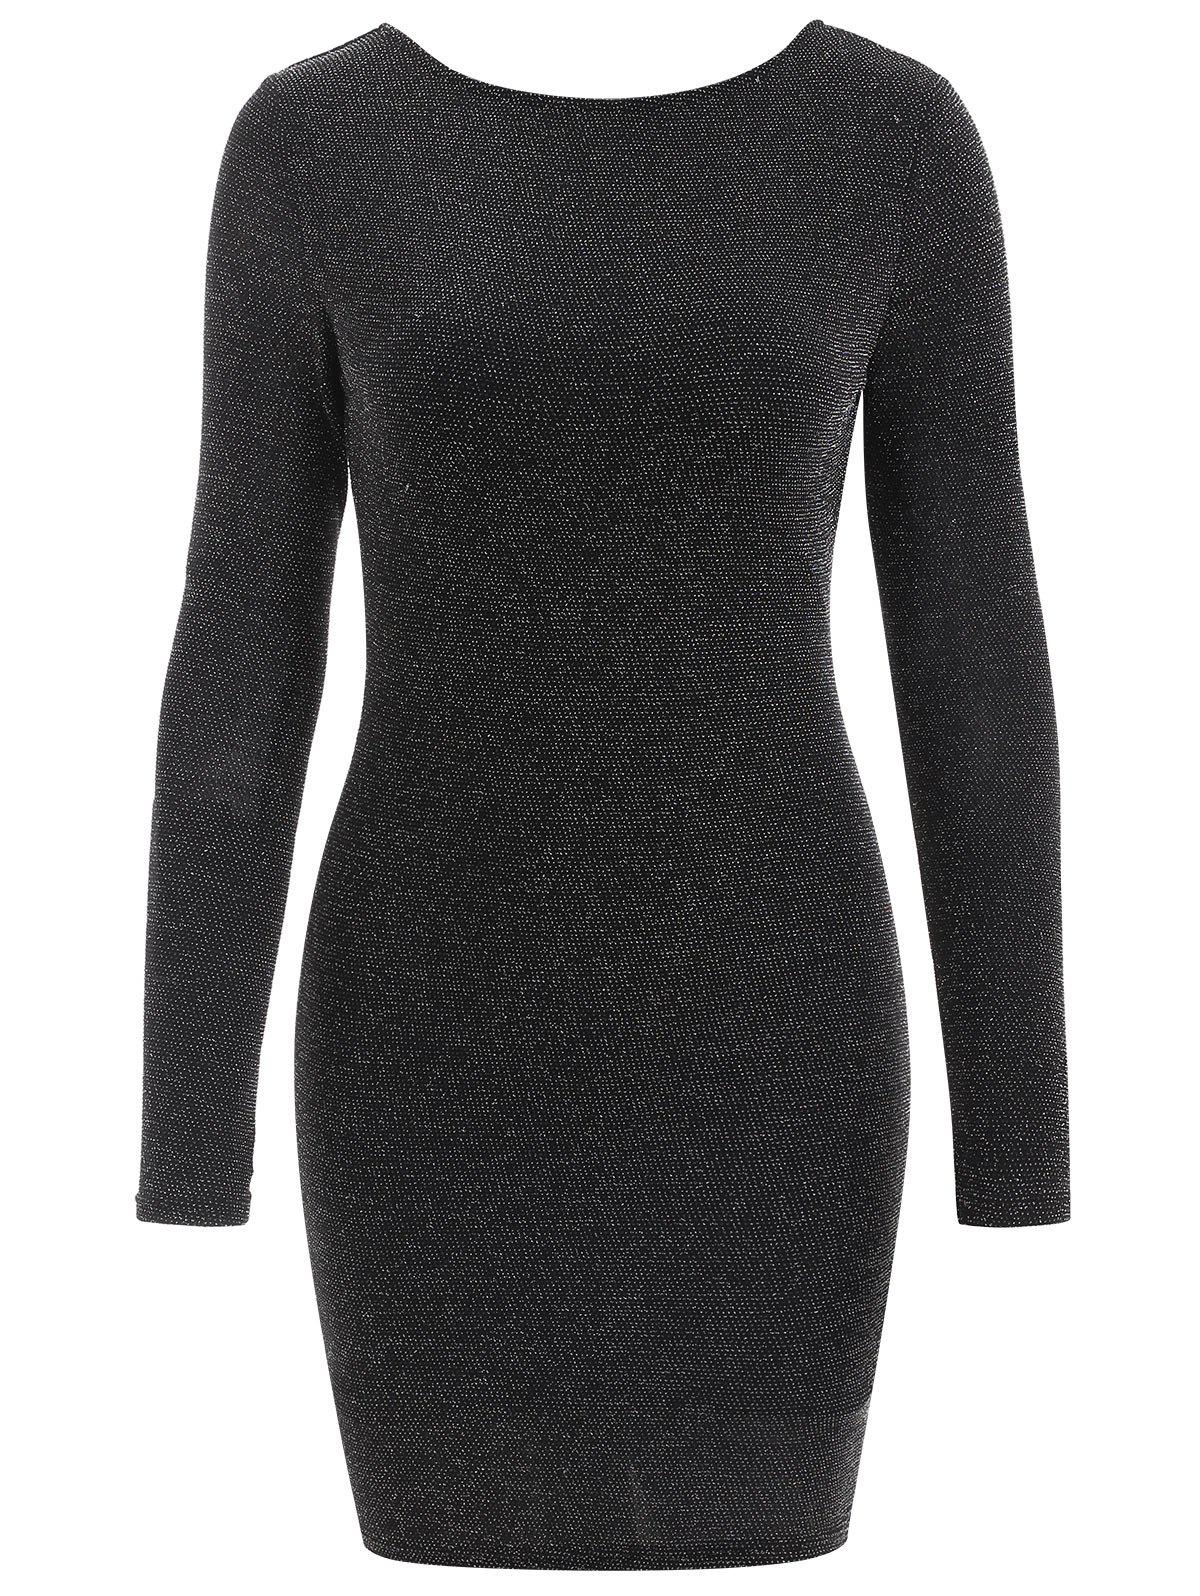 Online Long Sleeve Sparkly Bodycon Dress